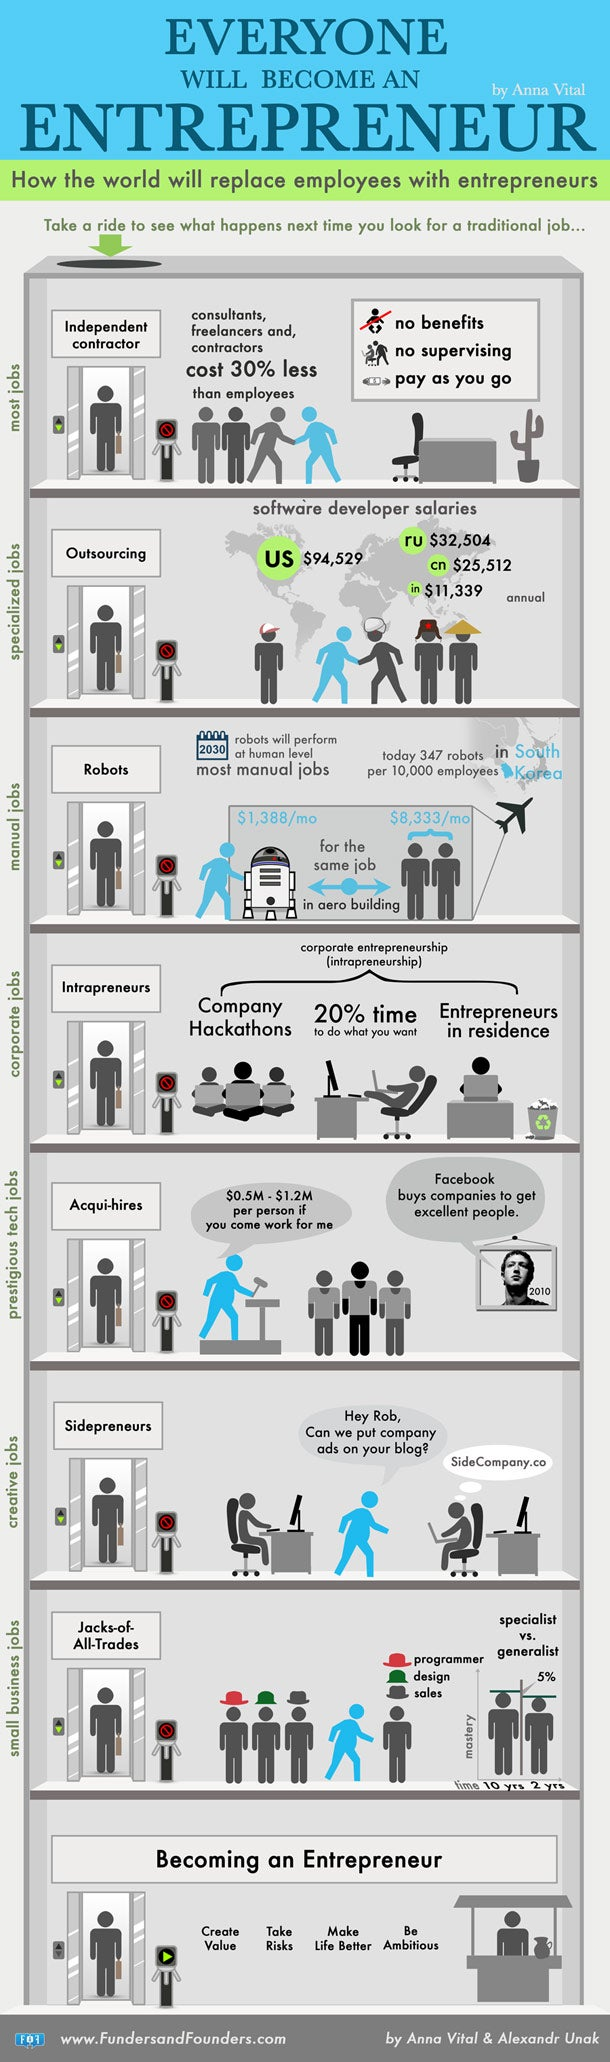 Why Everyone Will Have to Become an Entrepreneur (Infographic)